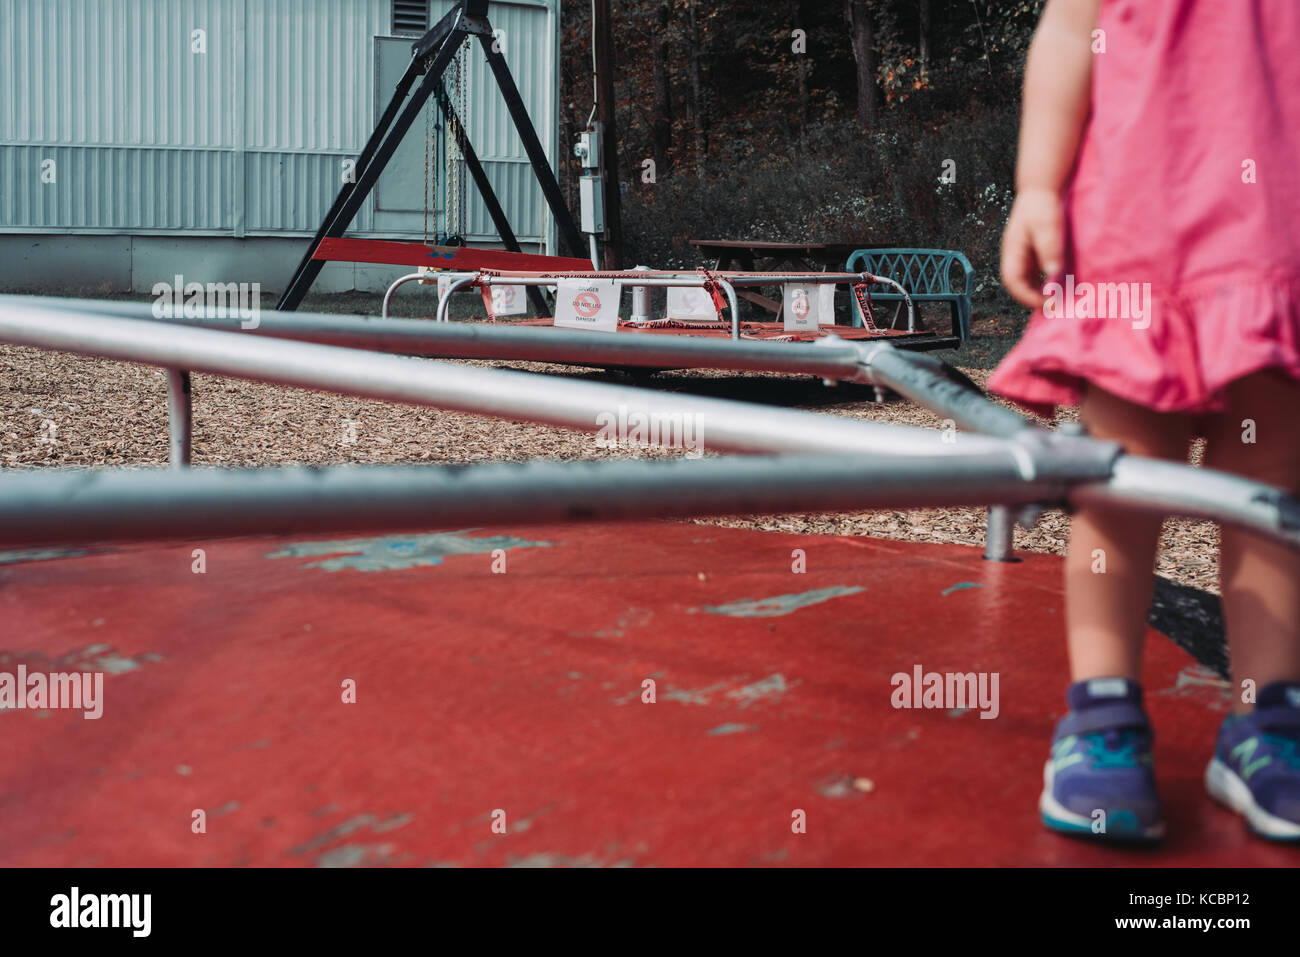 A toddler stands on a merry go round on a low income playground - Stock Image